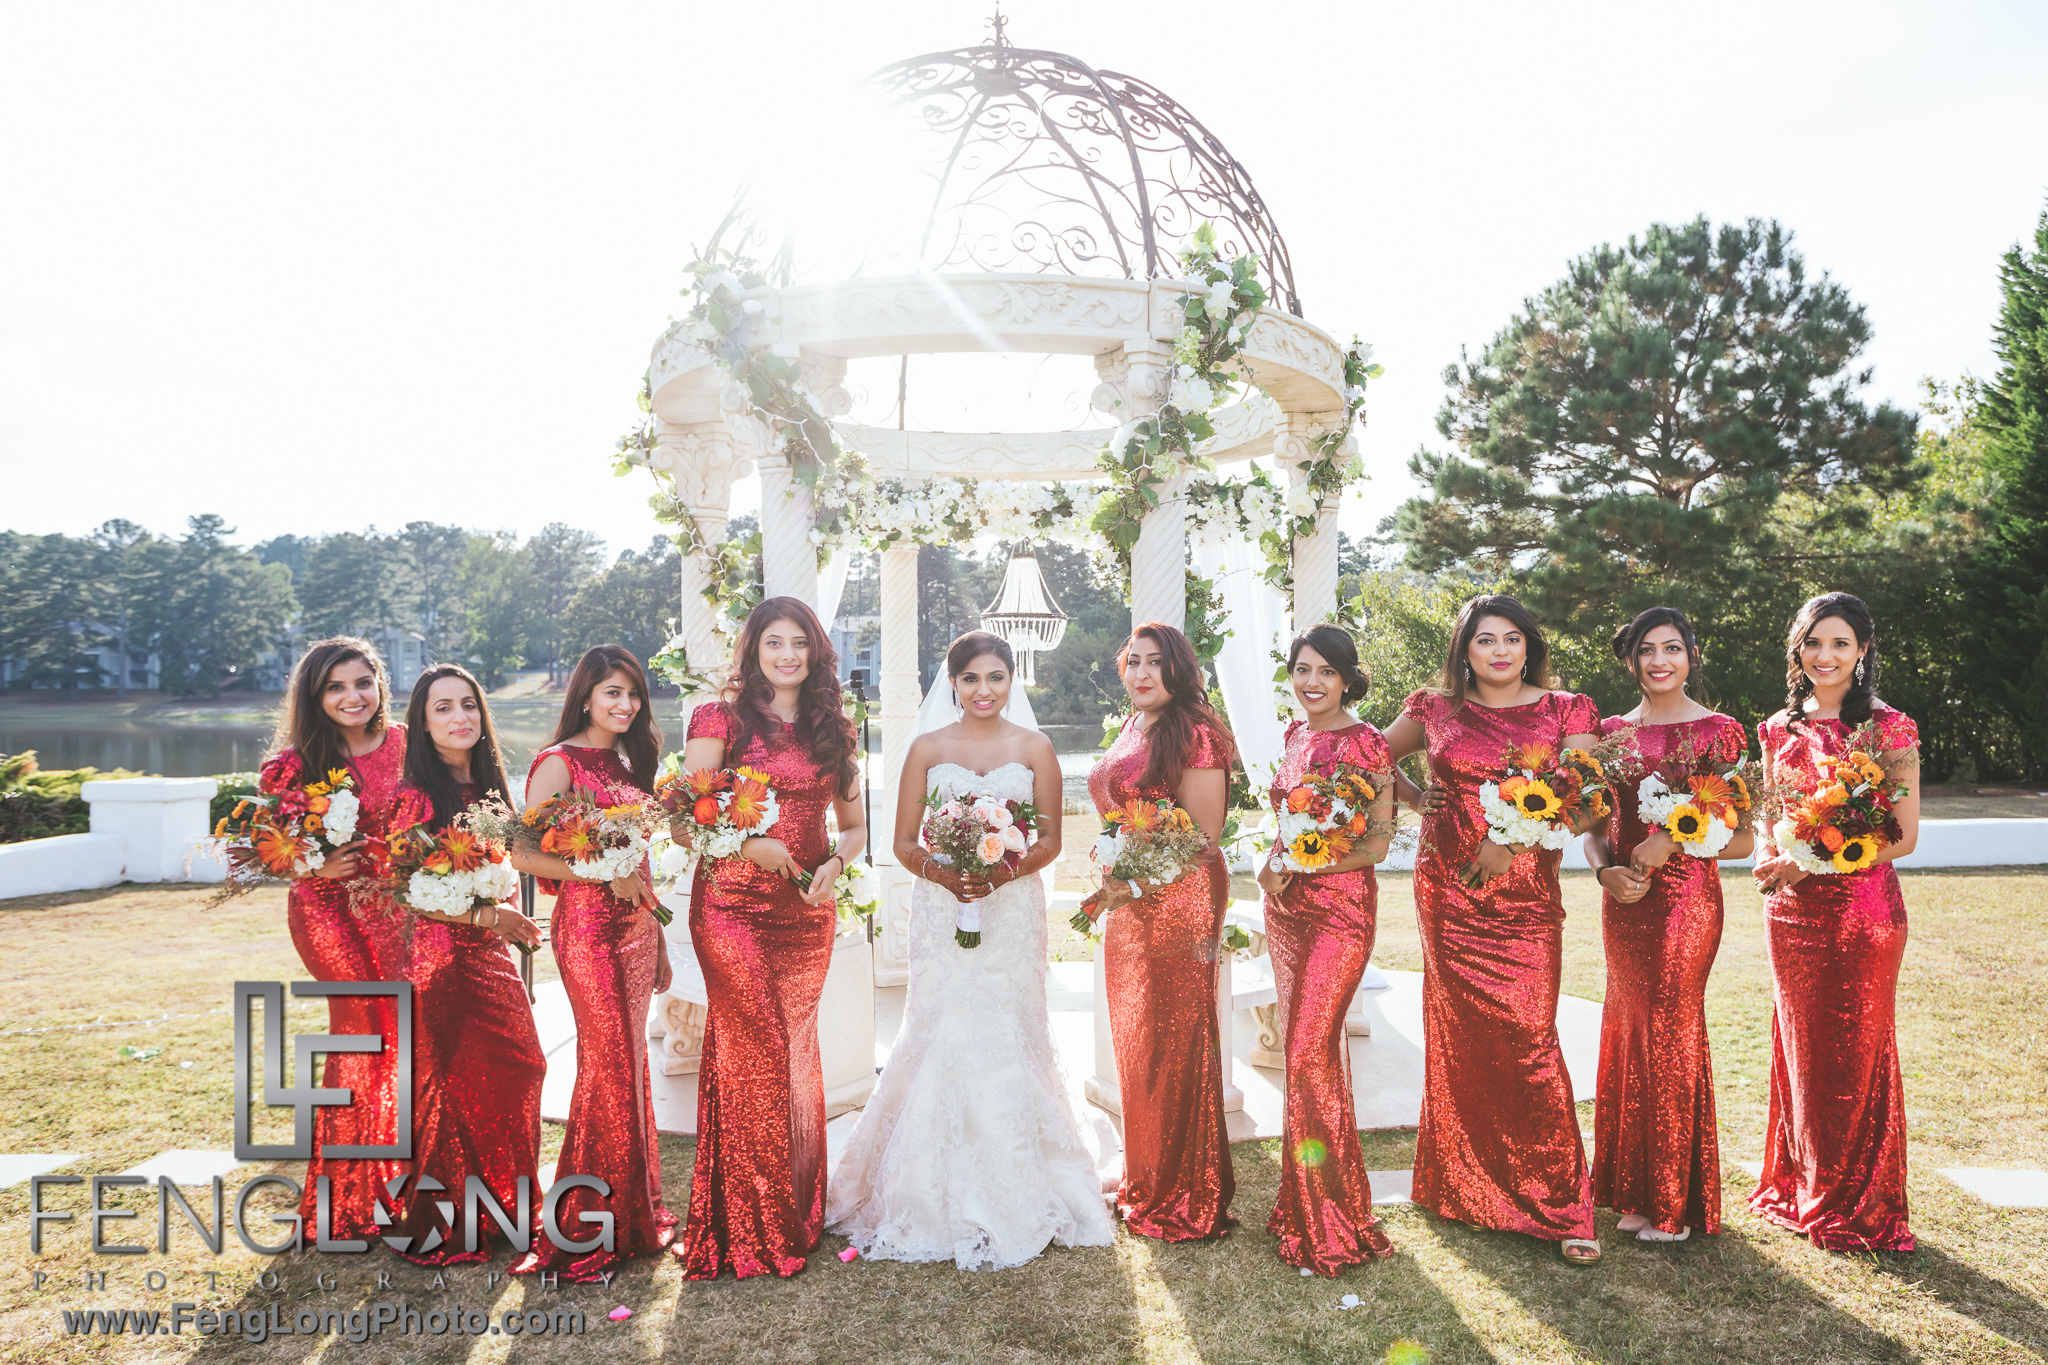 Wedding Party Portraits with Canon 5D Mark IV